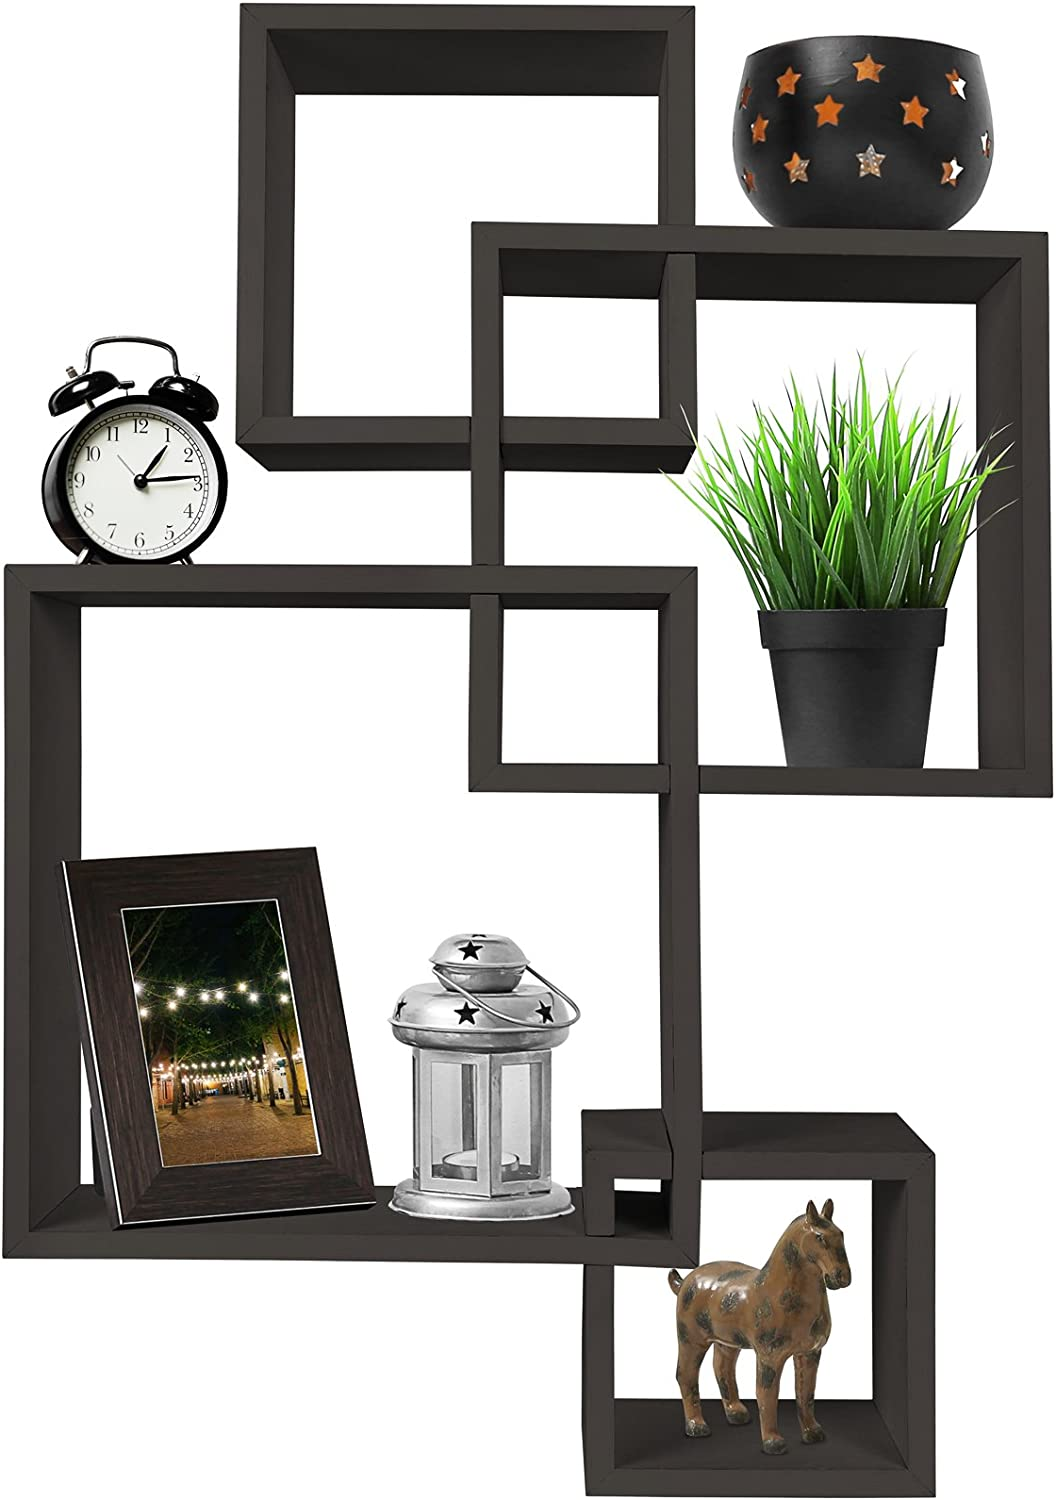 Greenco 4 Cube Intersecting Wall Mounted Floating Shelves Espresso Finish: Home & Kitchen